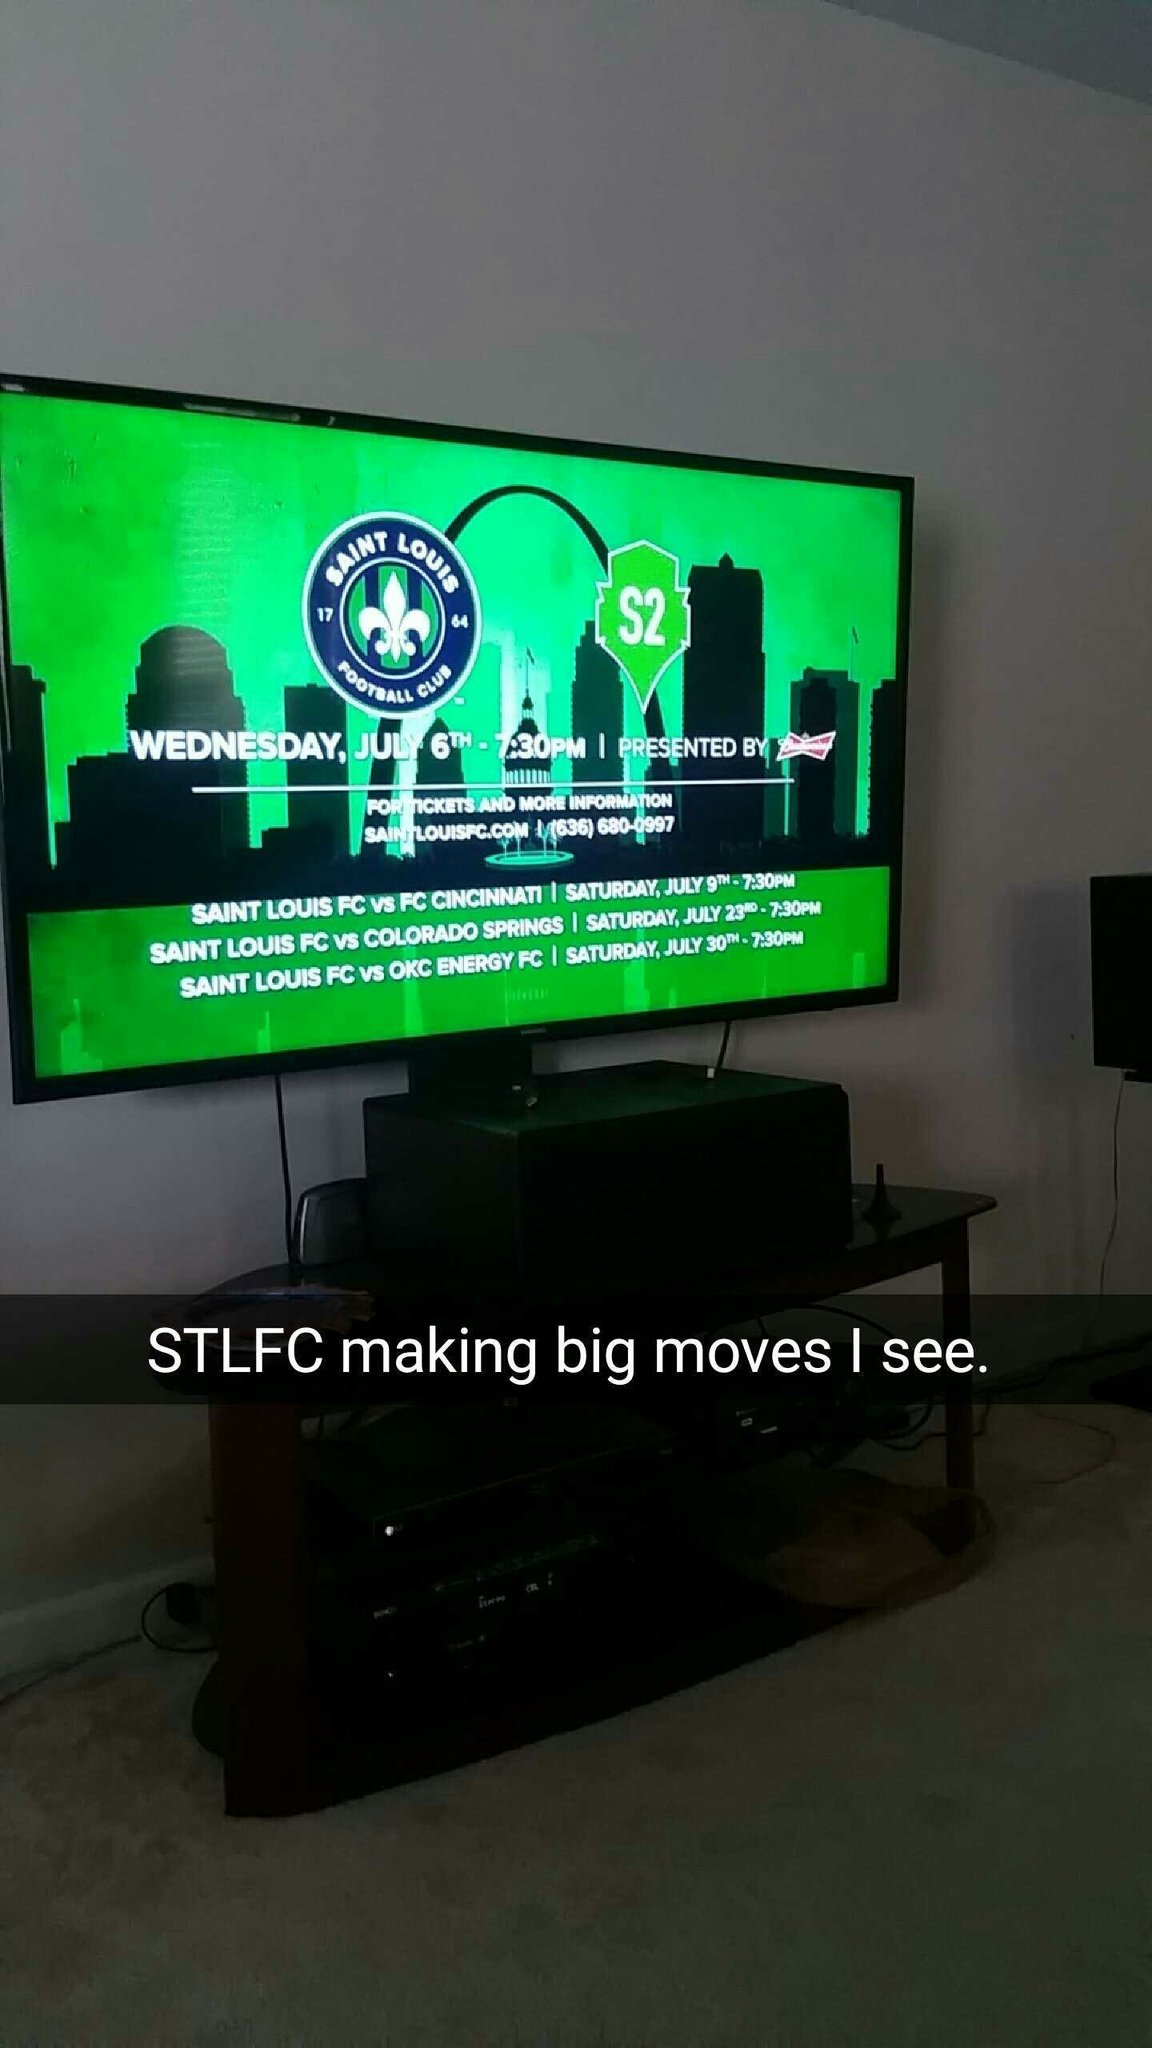 Nice commercial on ESPN2 for @SaintLouisFC https://t.co/h0nroq2T8S